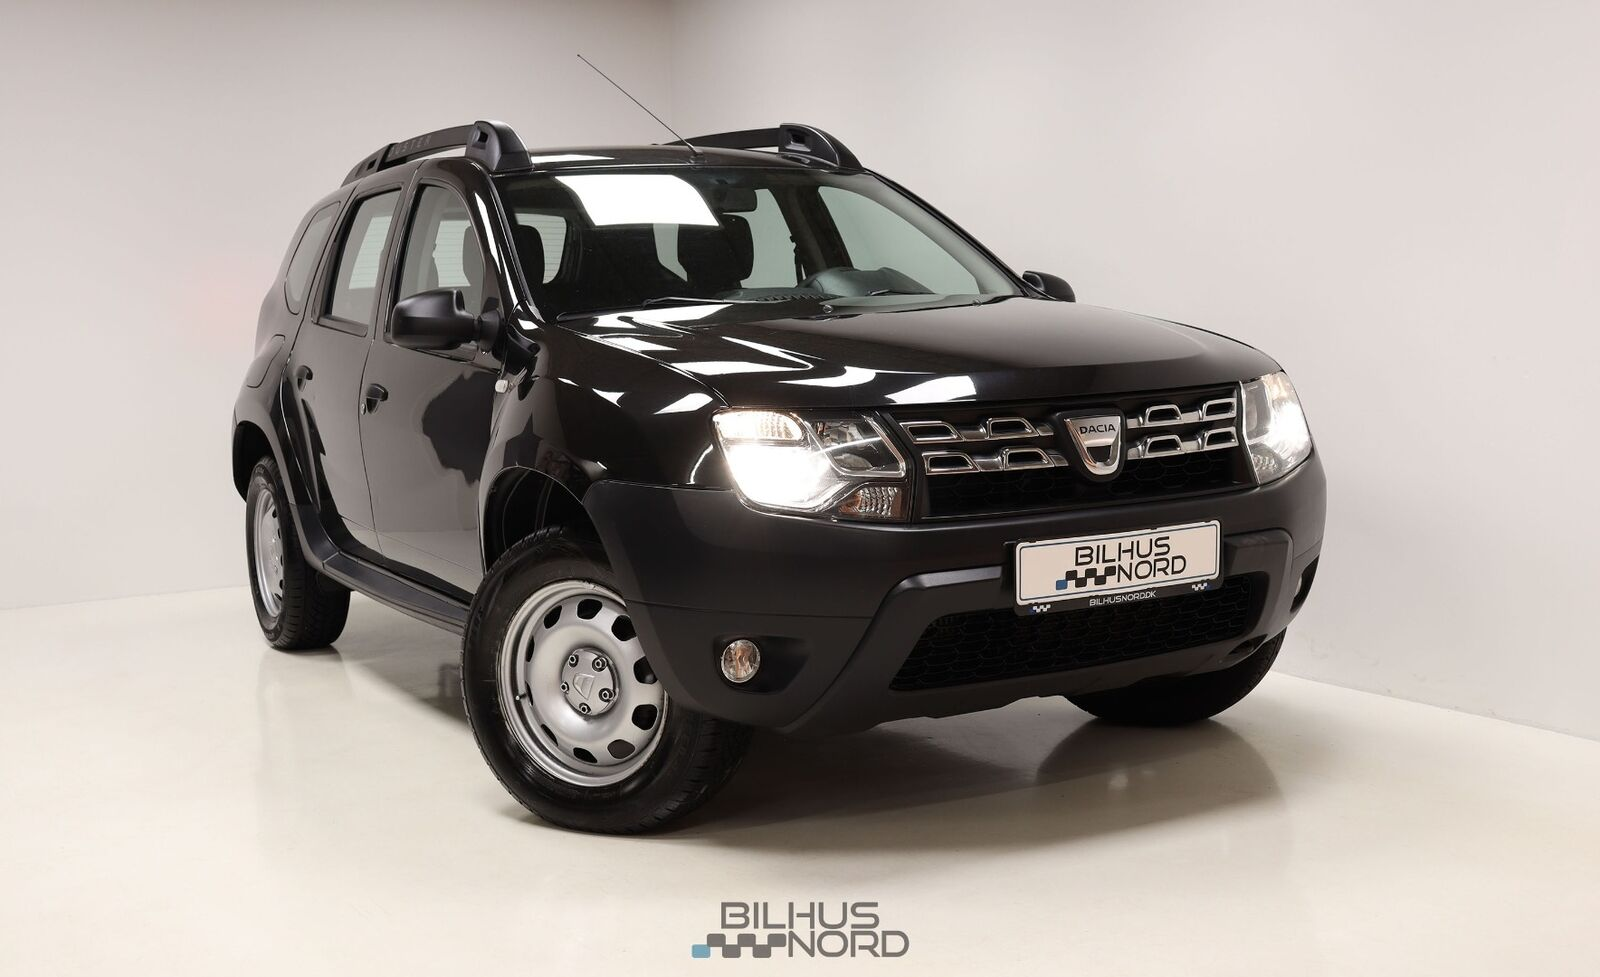 Dacia Duster 1,5 dCi 90 Ambiance 5d